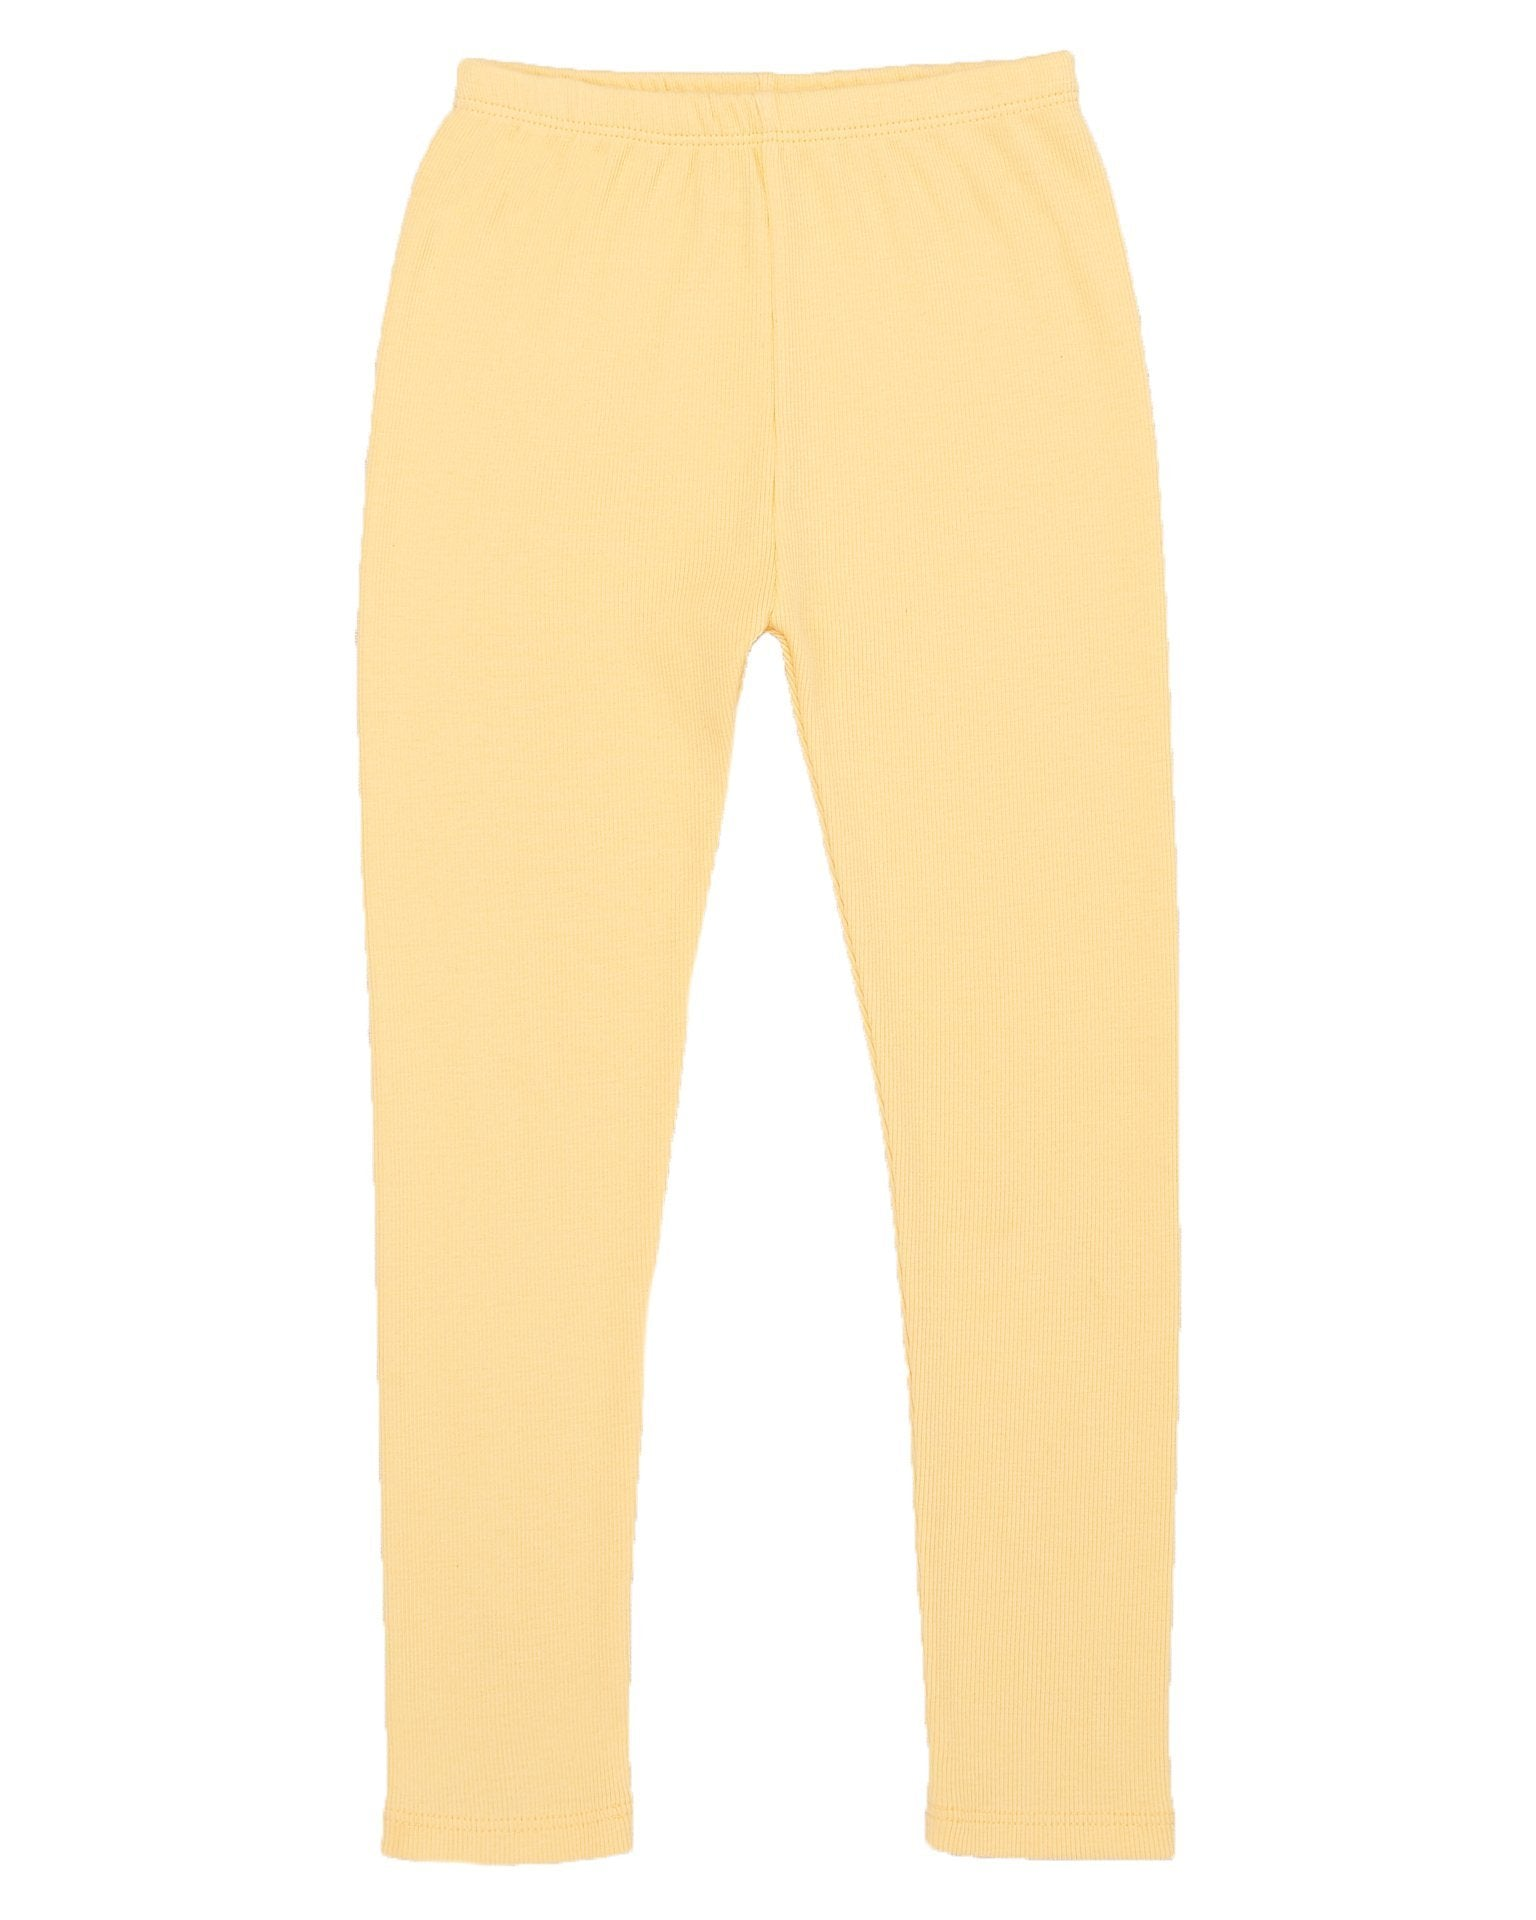 Little misha + puff baby girl ribbed legging in butter